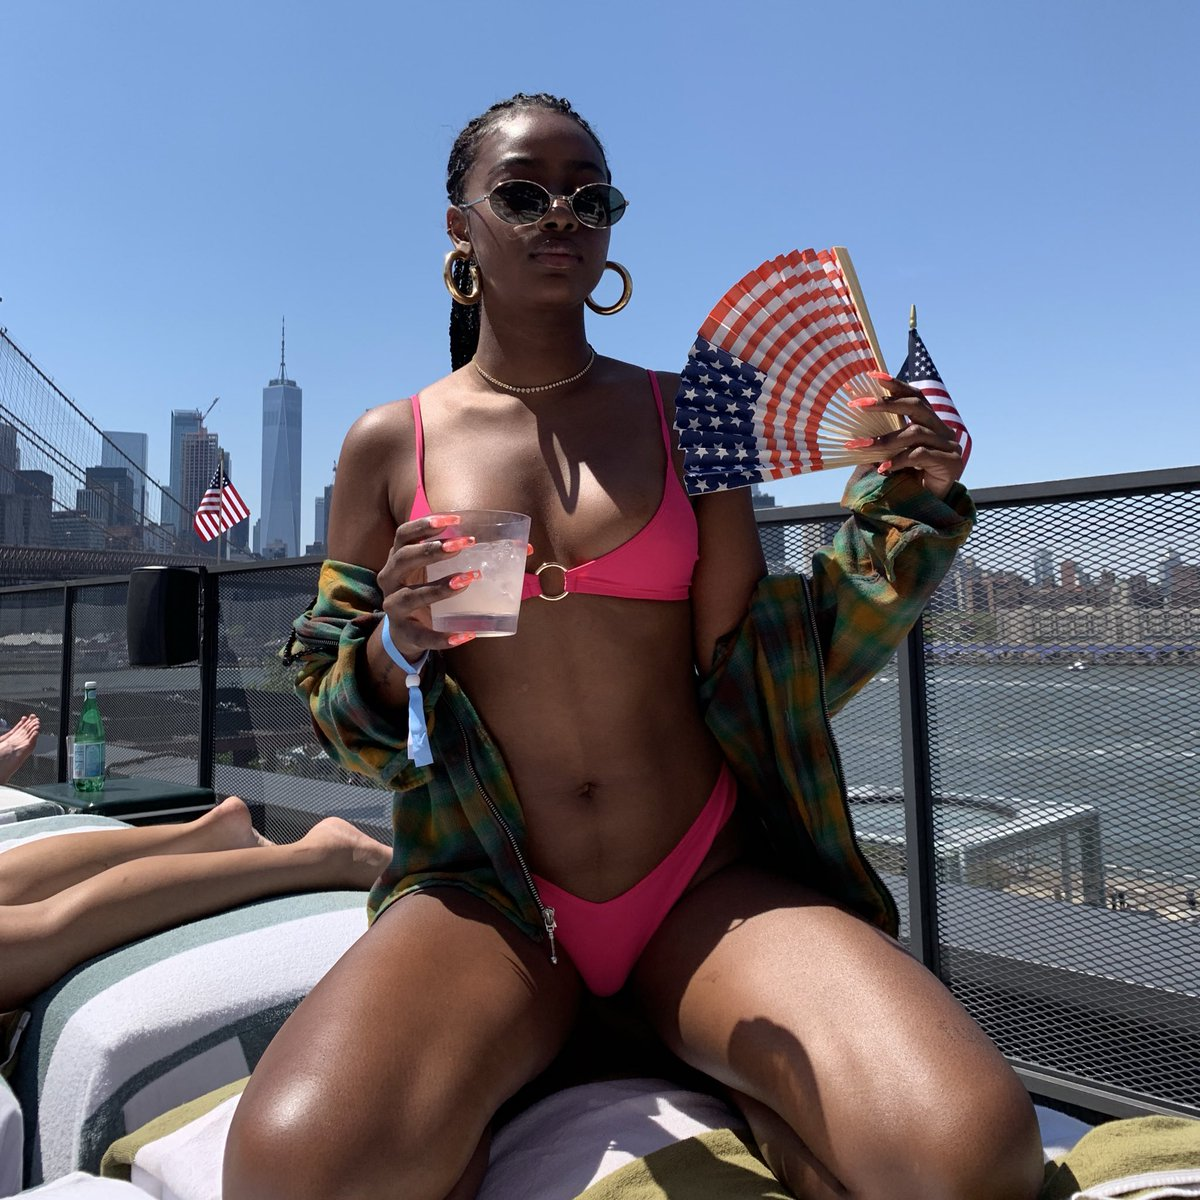 Justine Skye Shares Stunning Photos on July 4th celebration